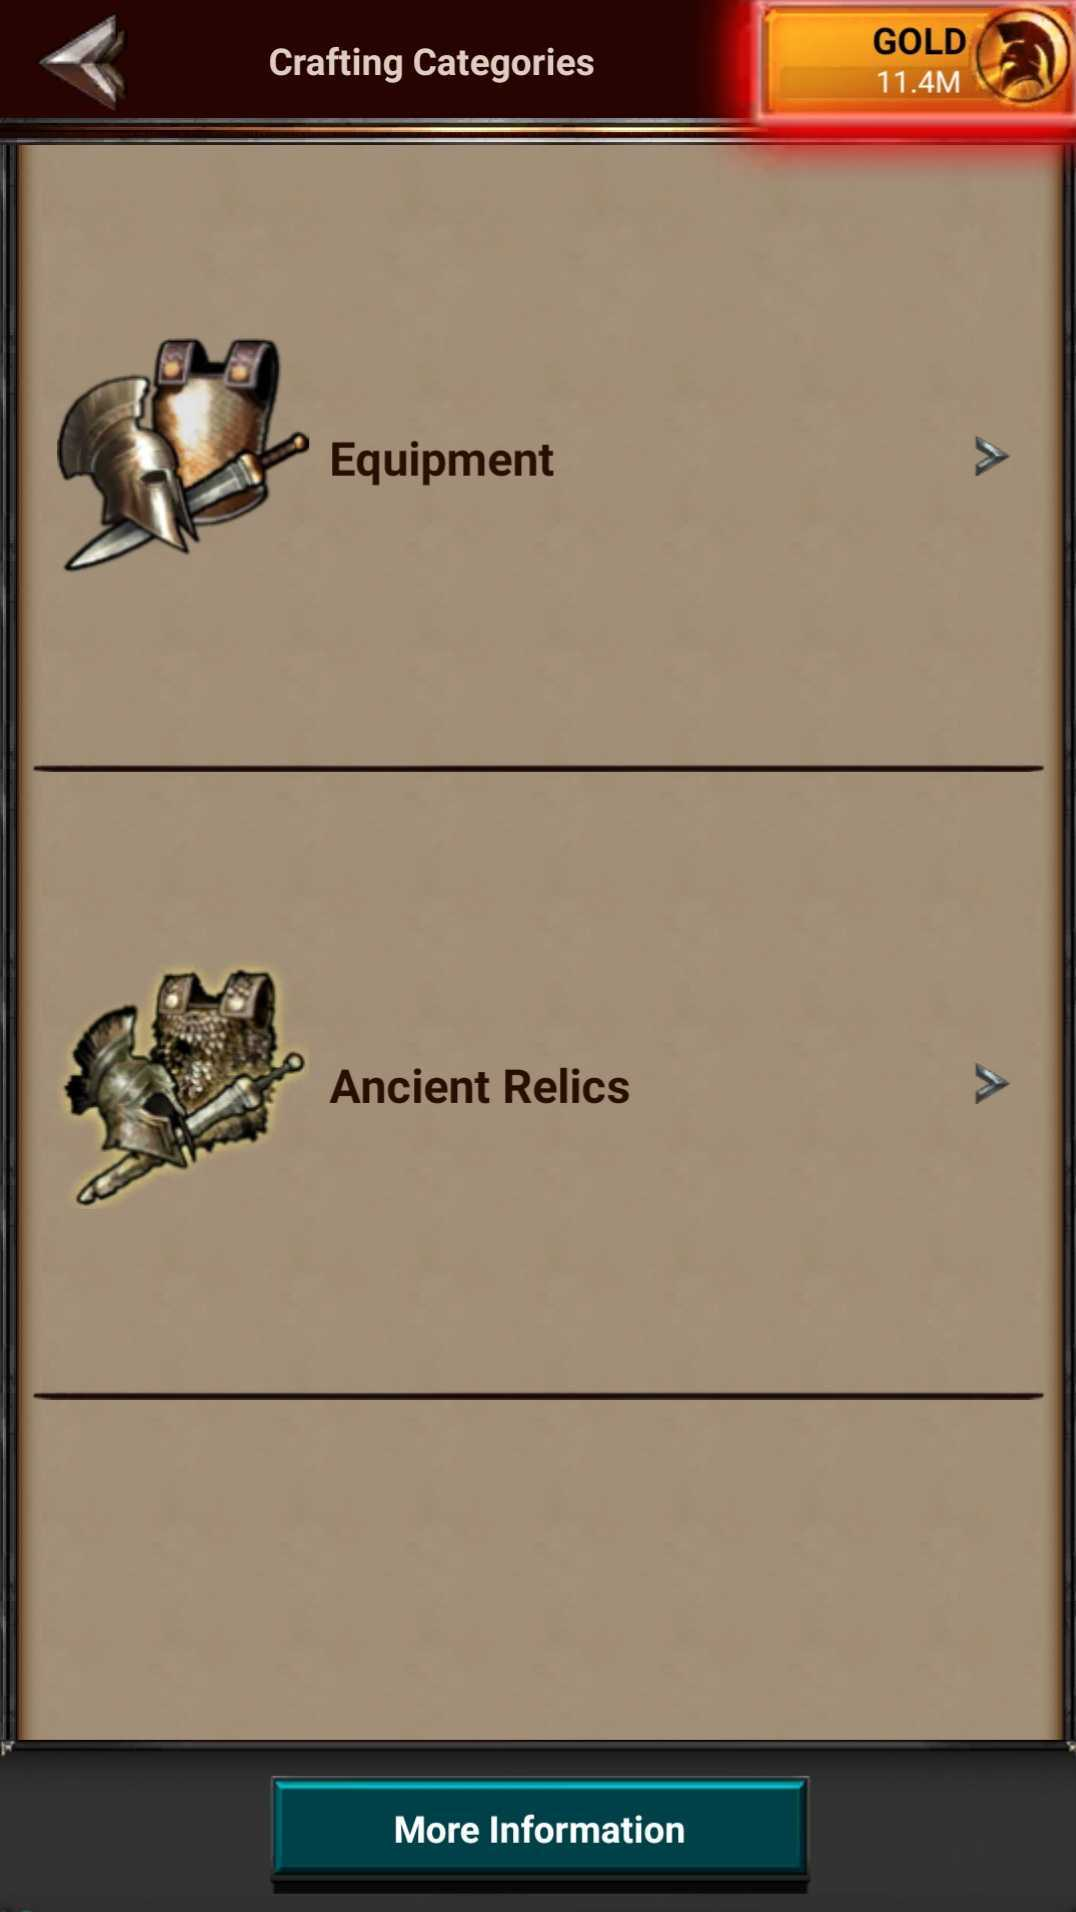 Crafting Categories